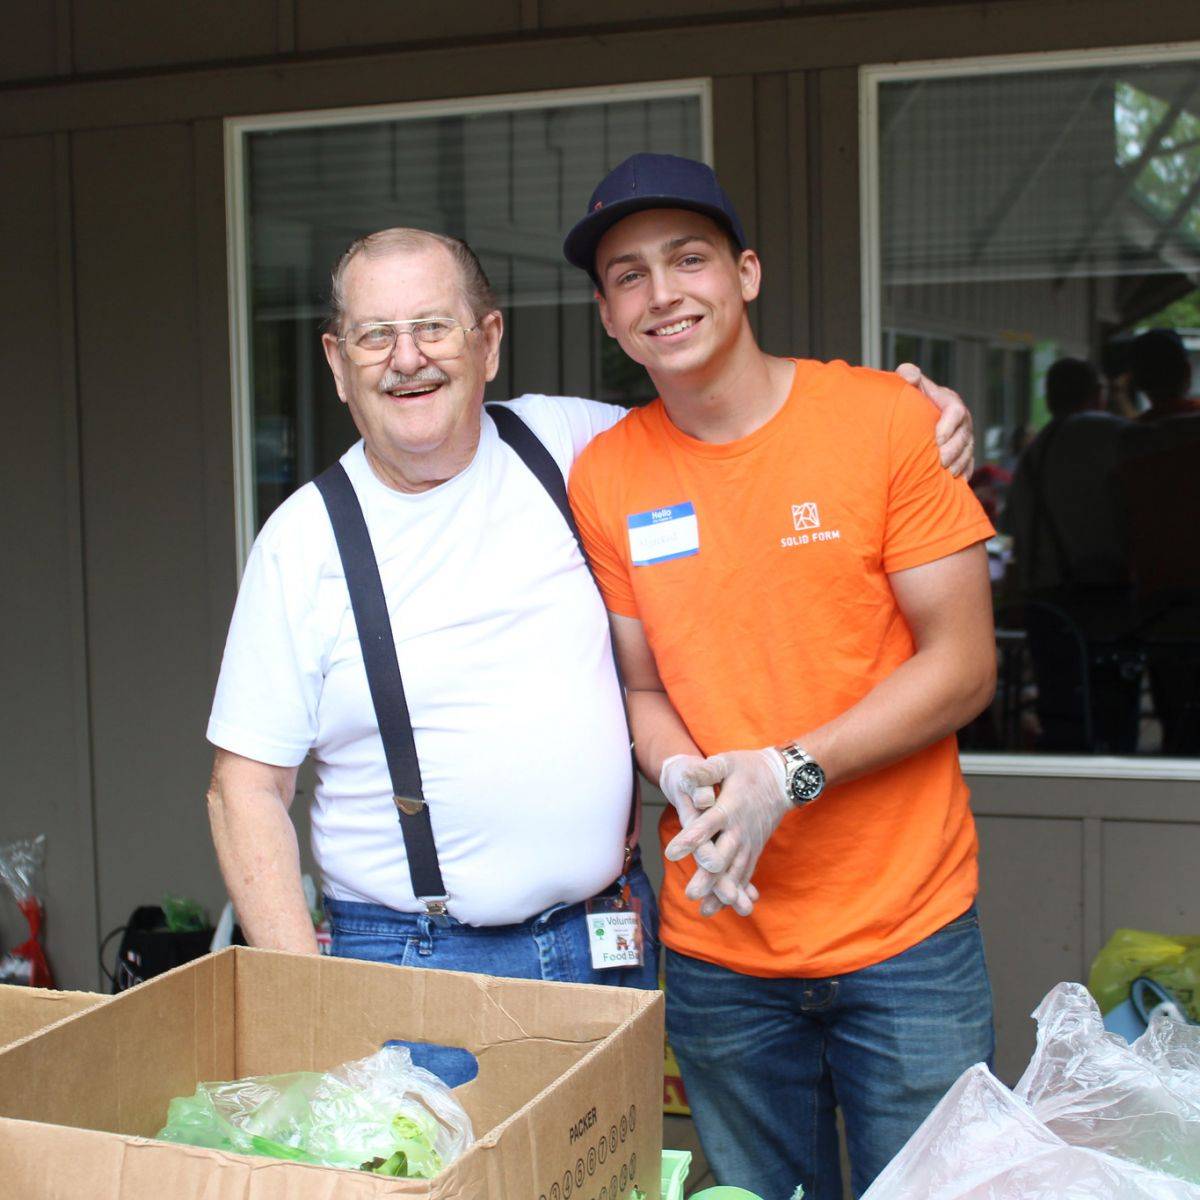 Marckus Smith, intern at Solid Form, stands with another volunteer at Harvest2Home